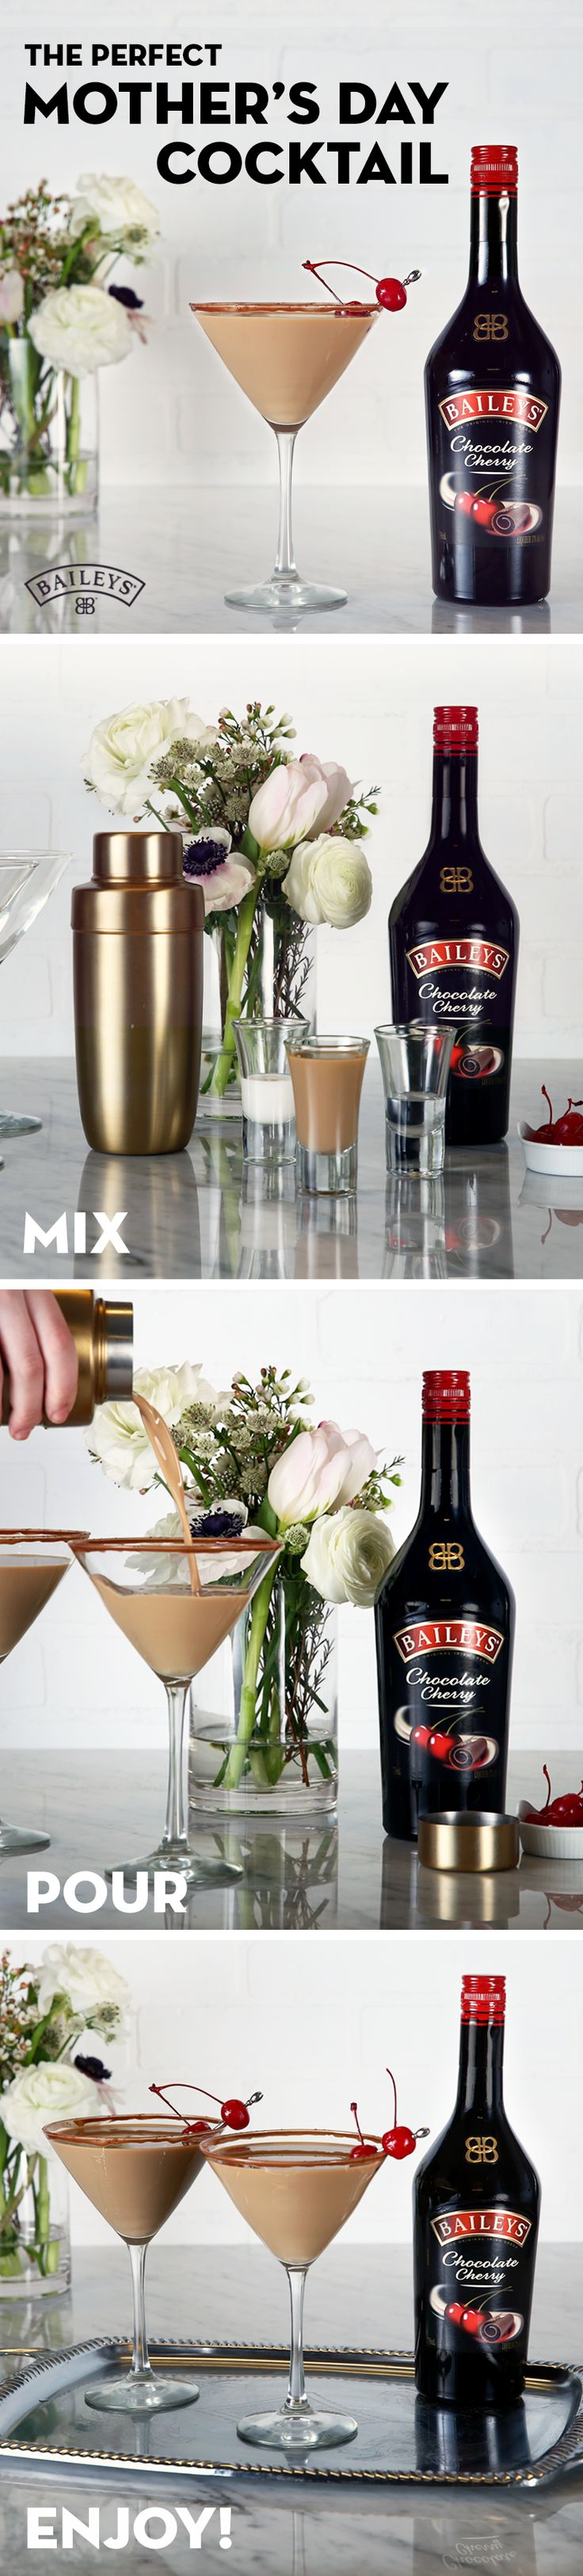 Make your Mother's Day brunch #BetterWithBaileys. She'll love this delicious White Chocolate Cherry Cocktail. Just mix 2 oz Baileys™ Chocolate Cherry, 0.25 oz Smirnoff™ No. 21 Vodka, and 0.25 oz Godiva™ White Chocolate Liqueur in a shaker with ice. Pour into a martini glass, garnish, and enjoy! Bonus: Add a beautiful DIY garnish that will make her feel extra special.